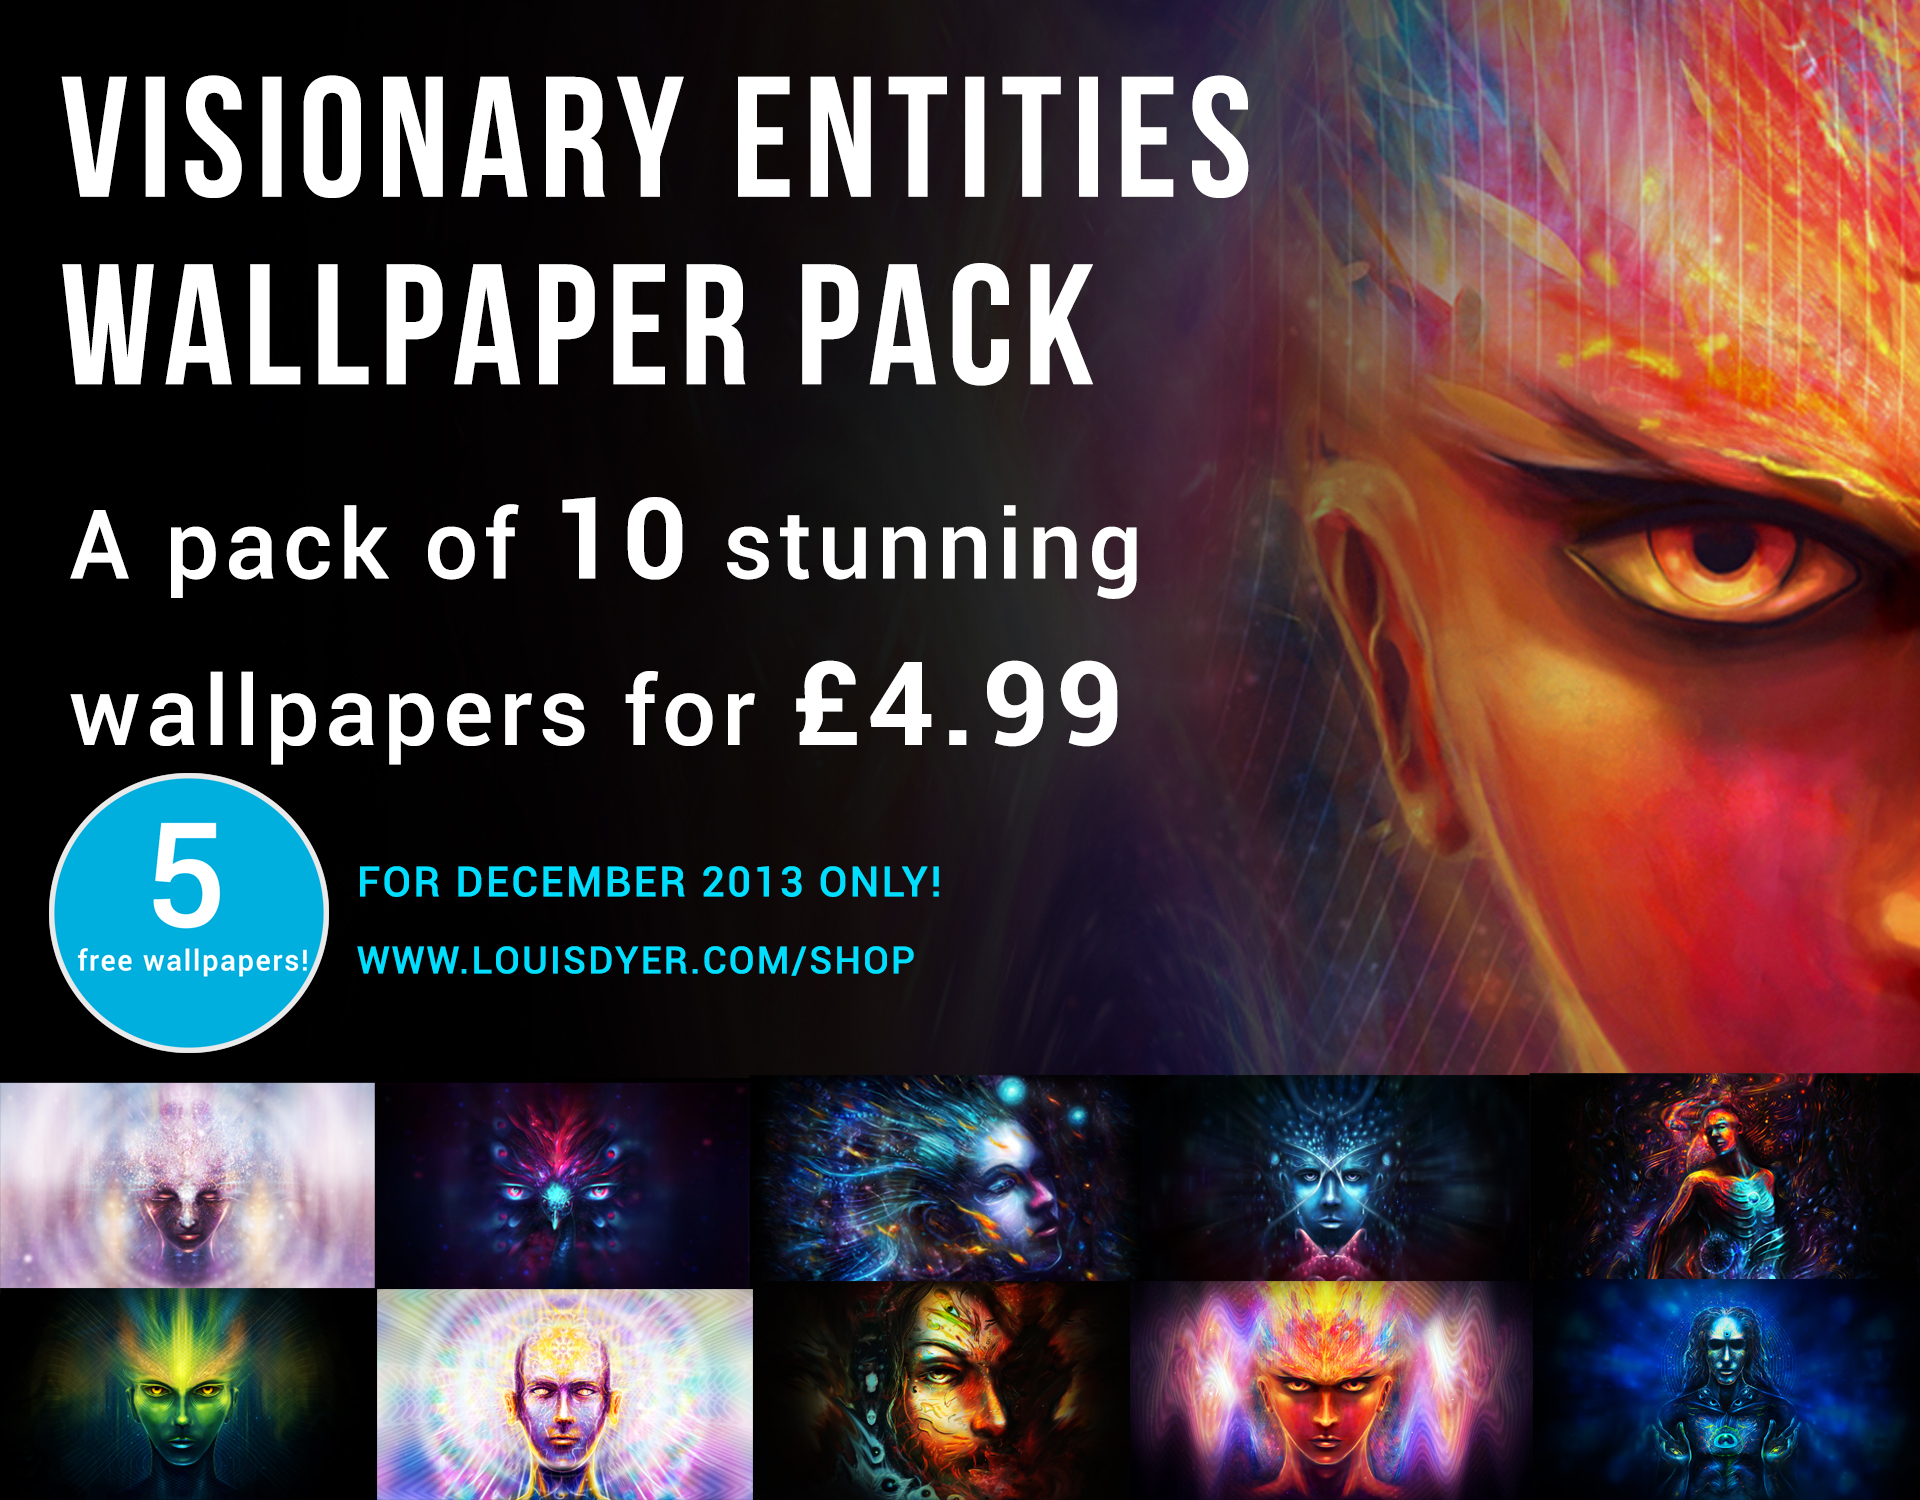 Wallpapers For Just £499 At That Price You Are Getting 5